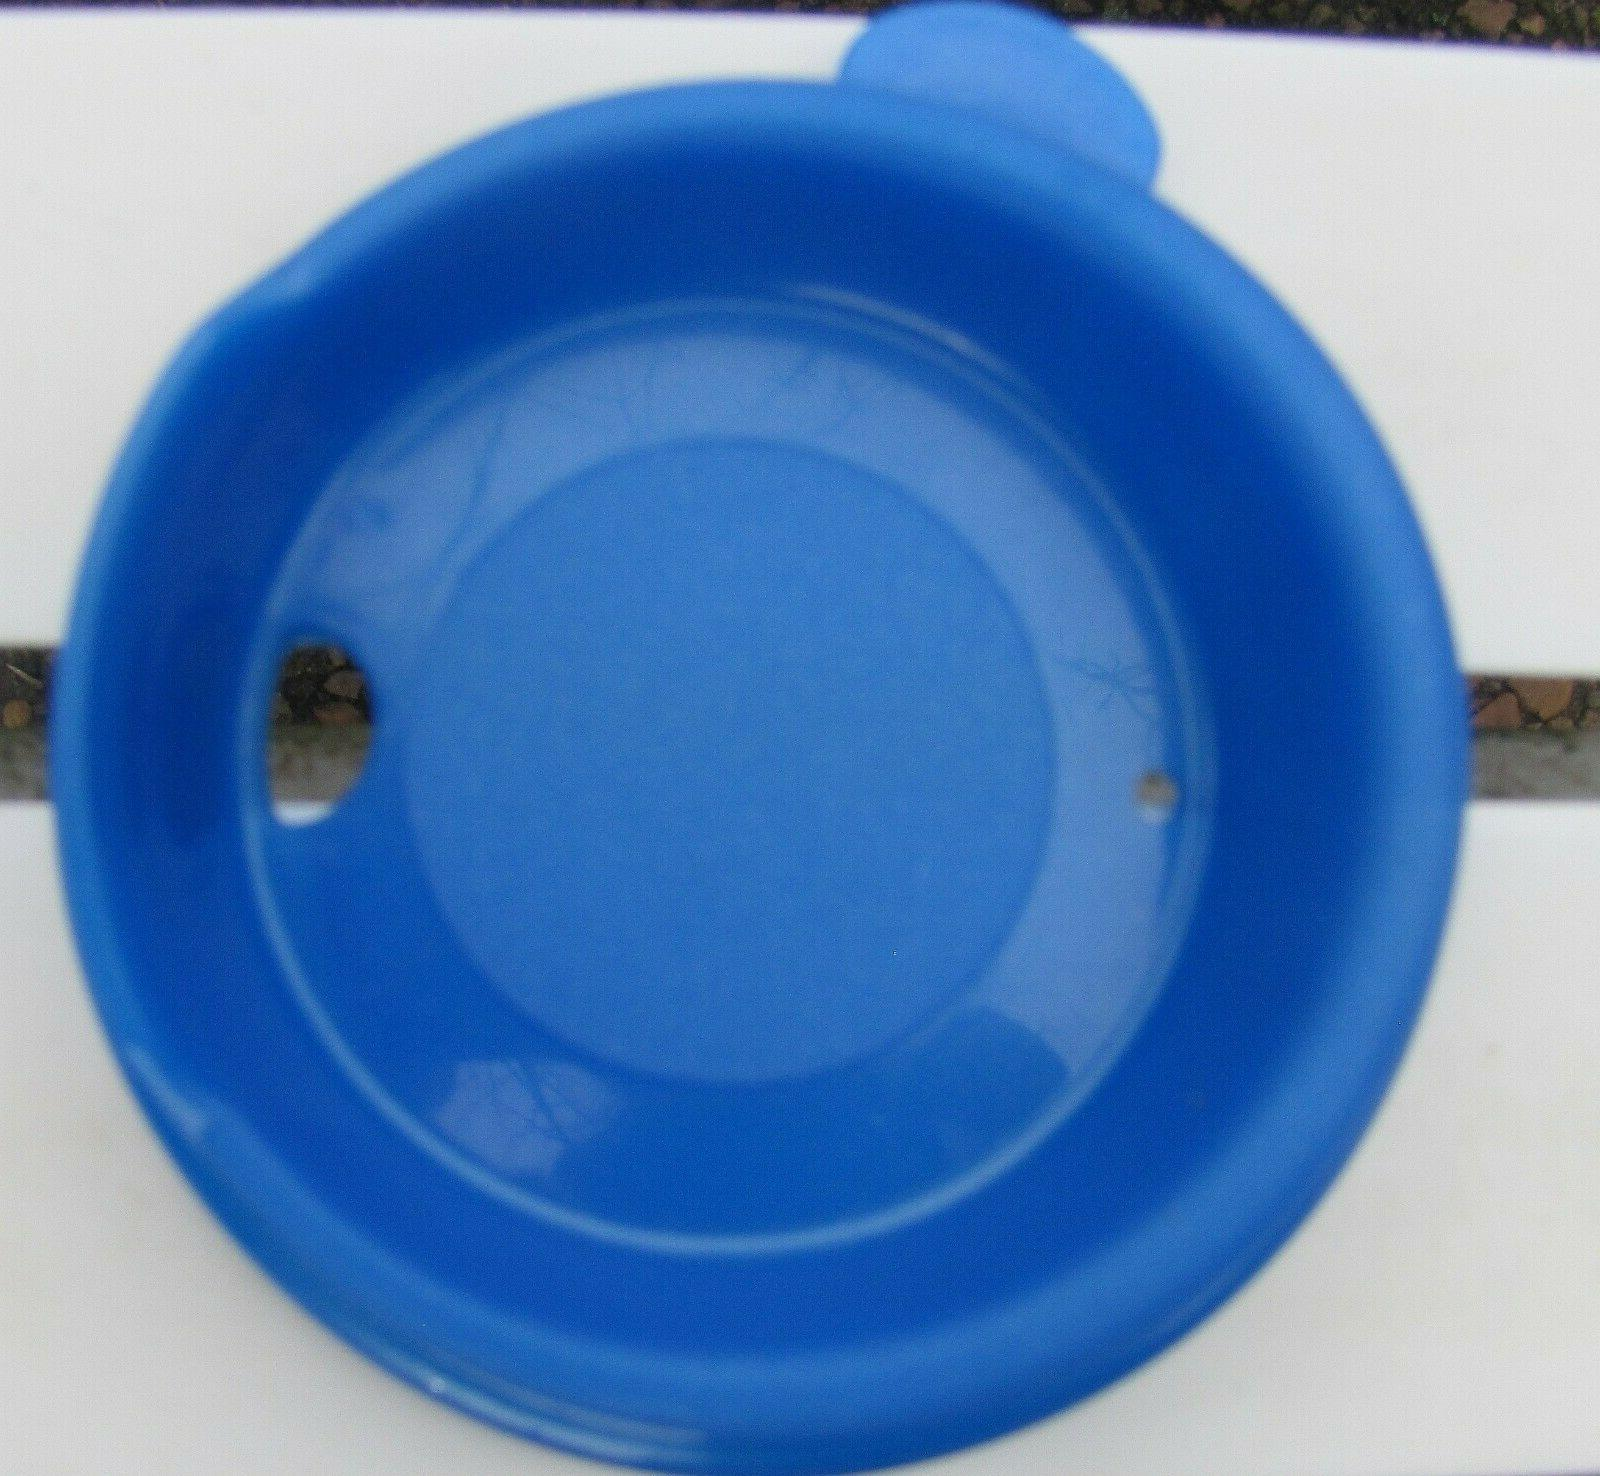 new 10 lids for insulated coffee mugs